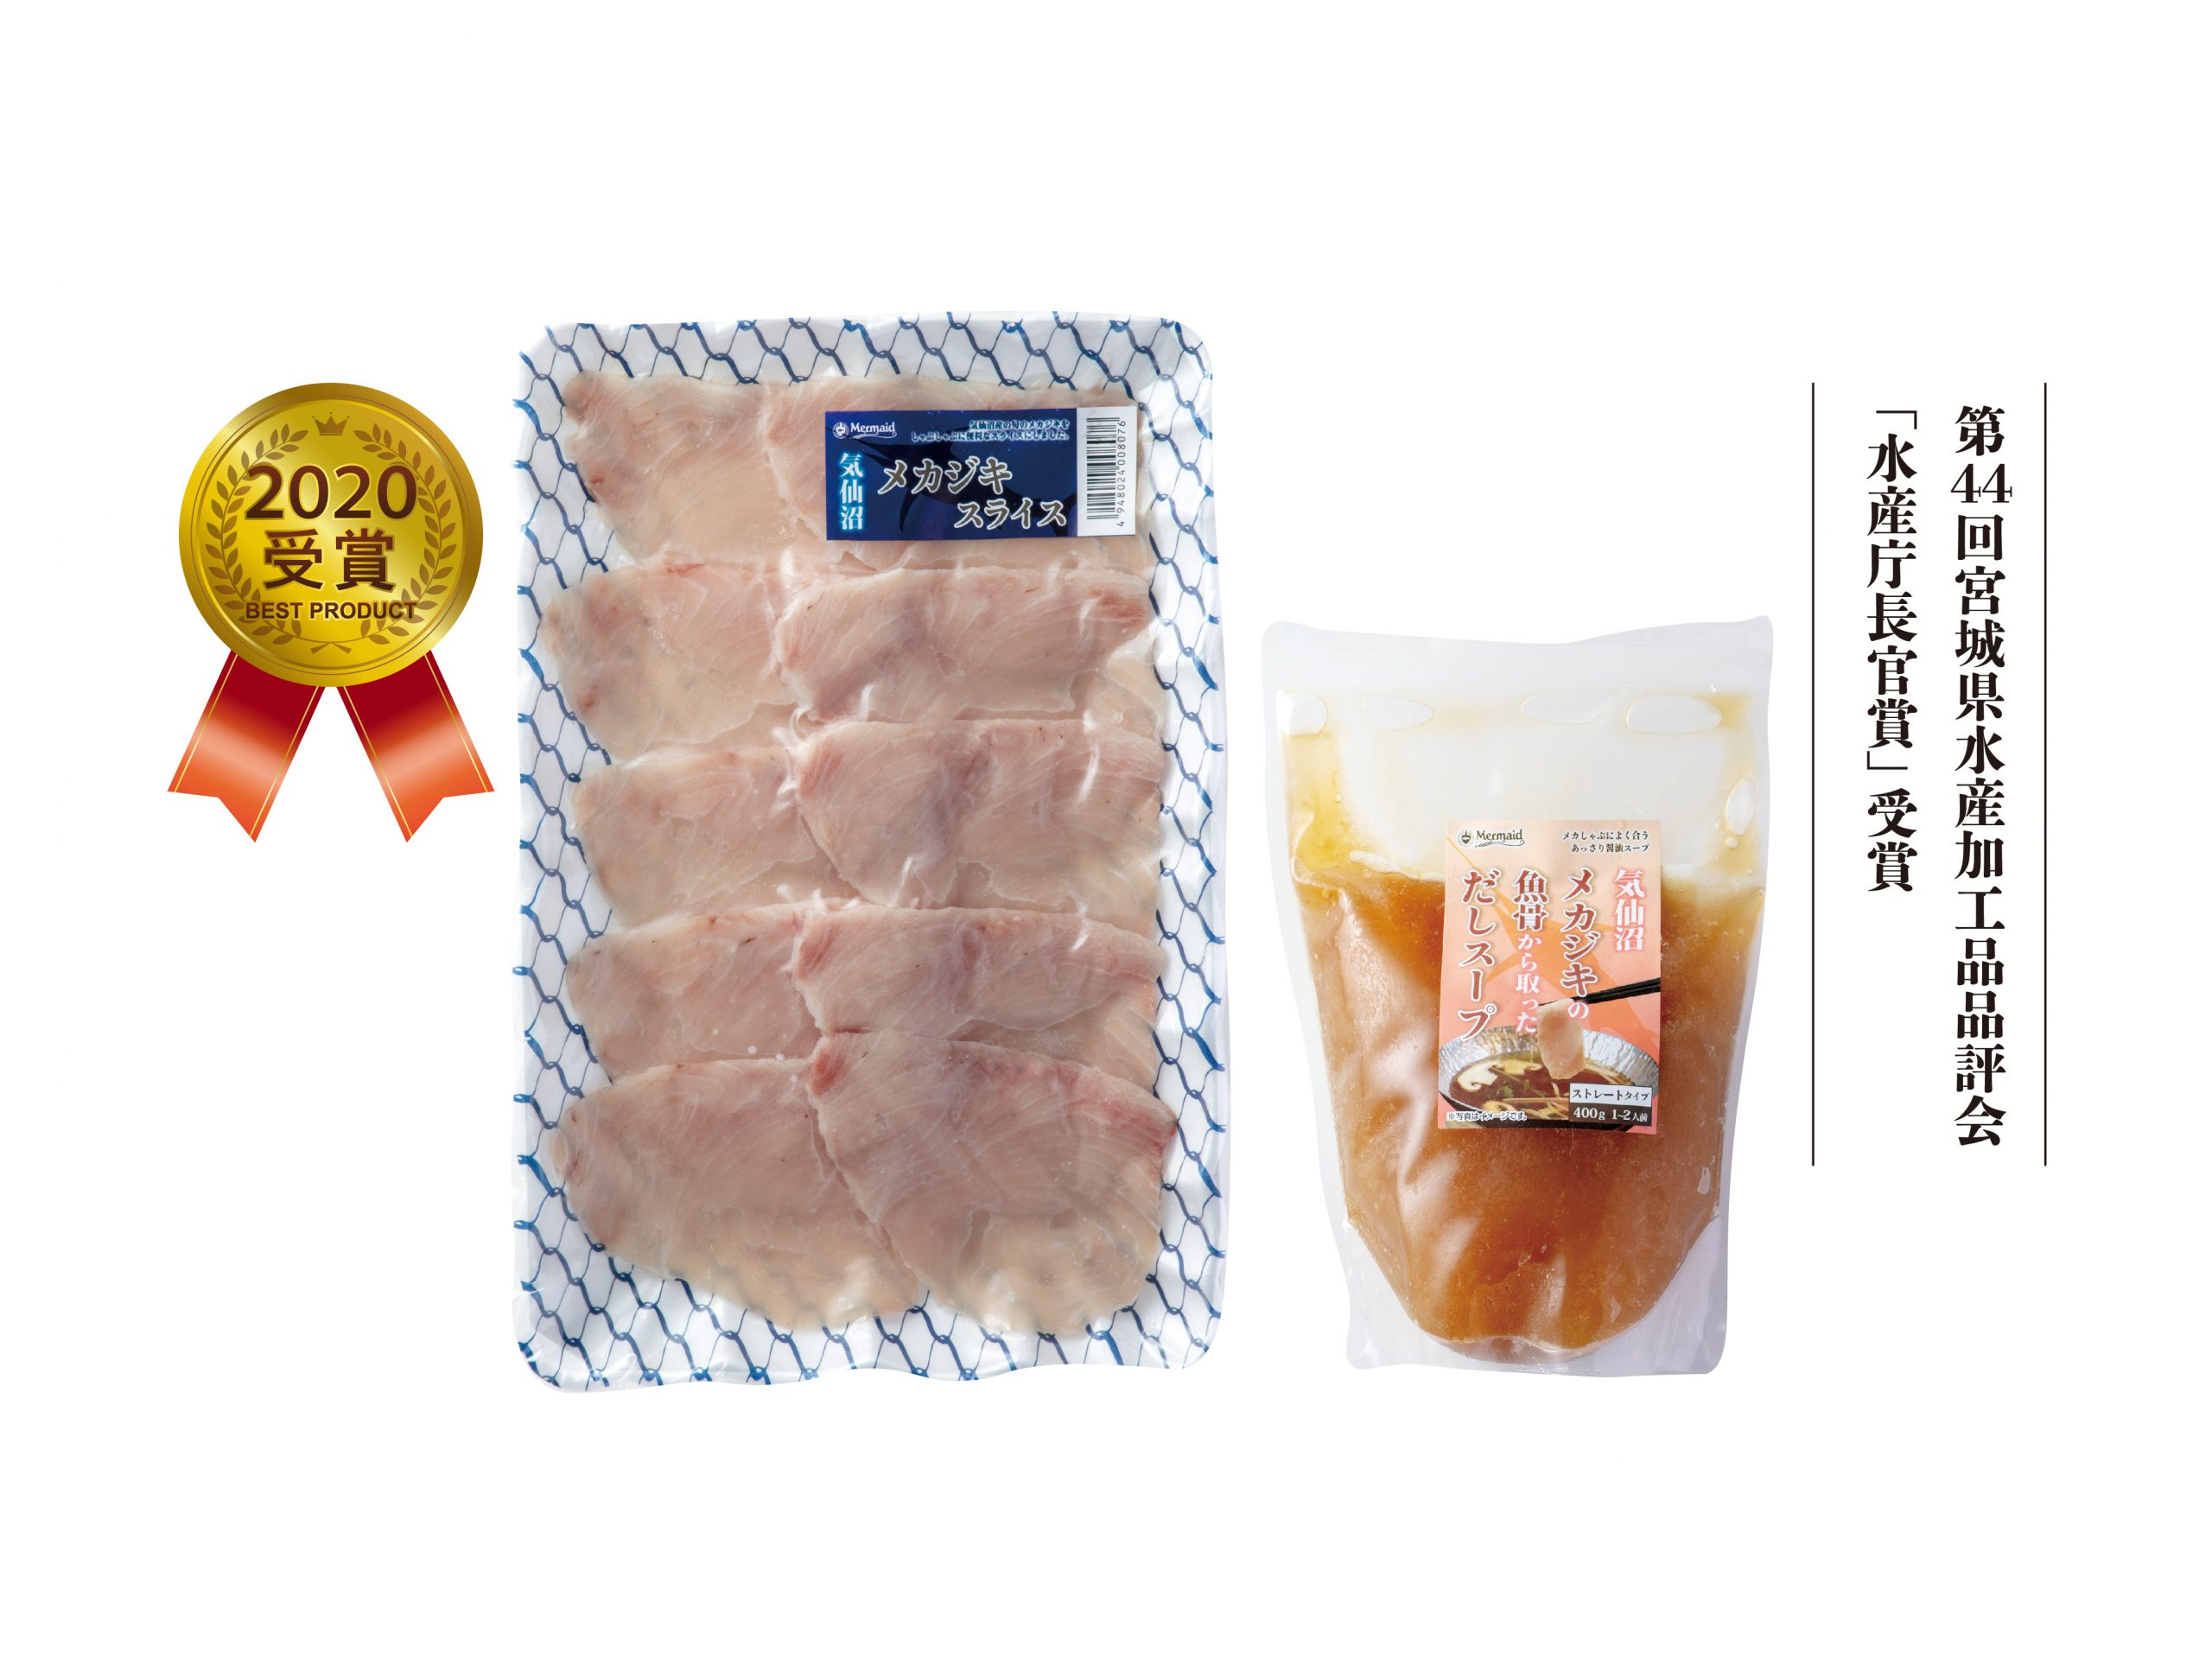 CP受賞商品レイアウト(気仙沼メカしゃぶセット)